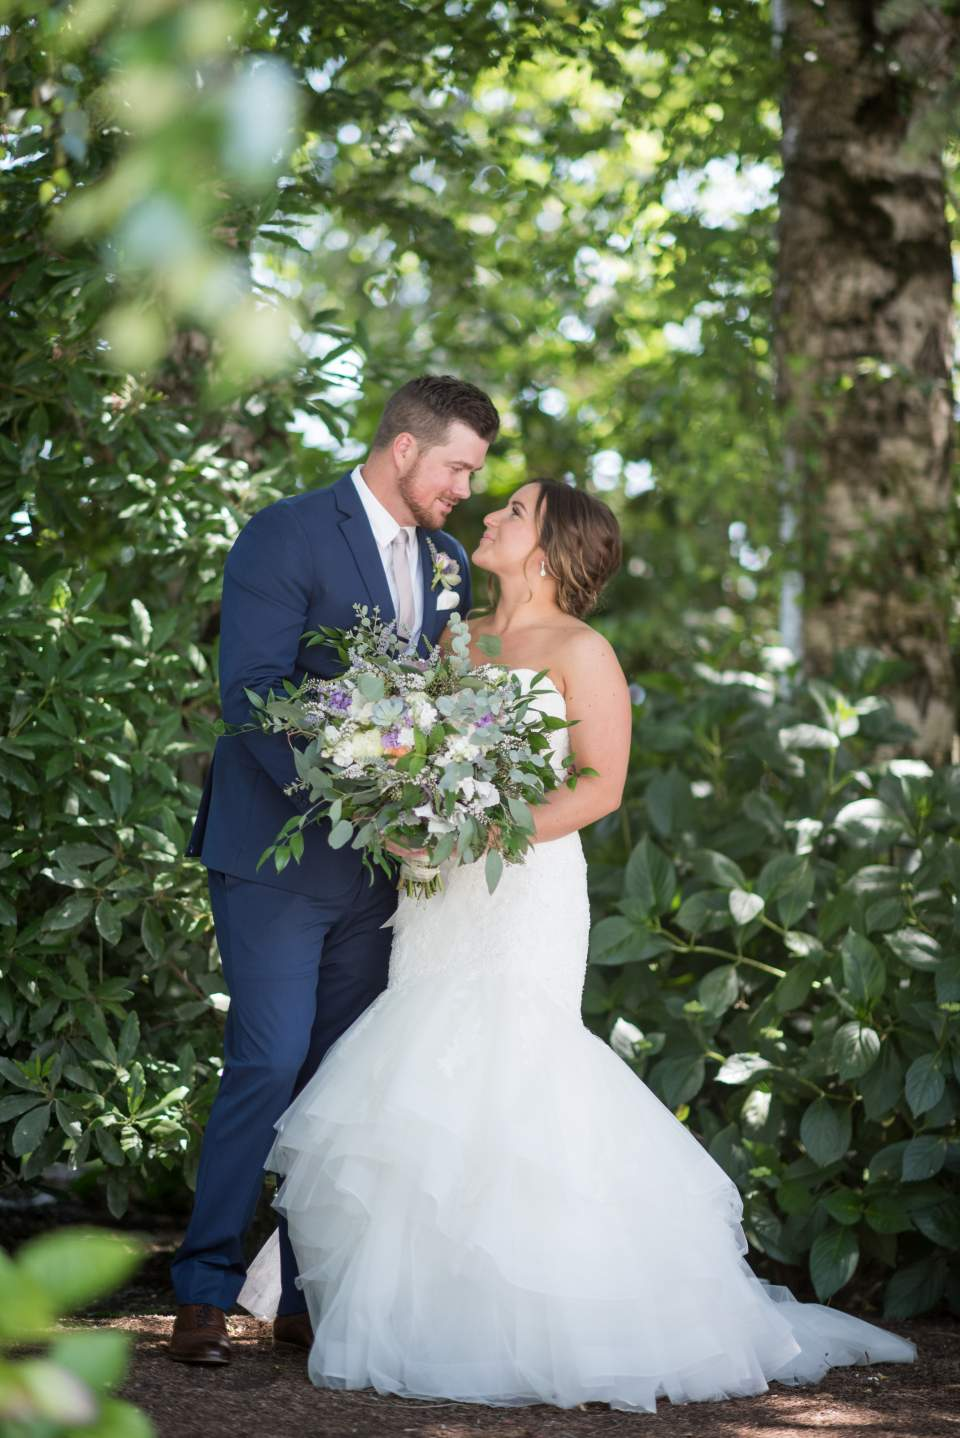 beautiful wedding day photos at maplehurst farm